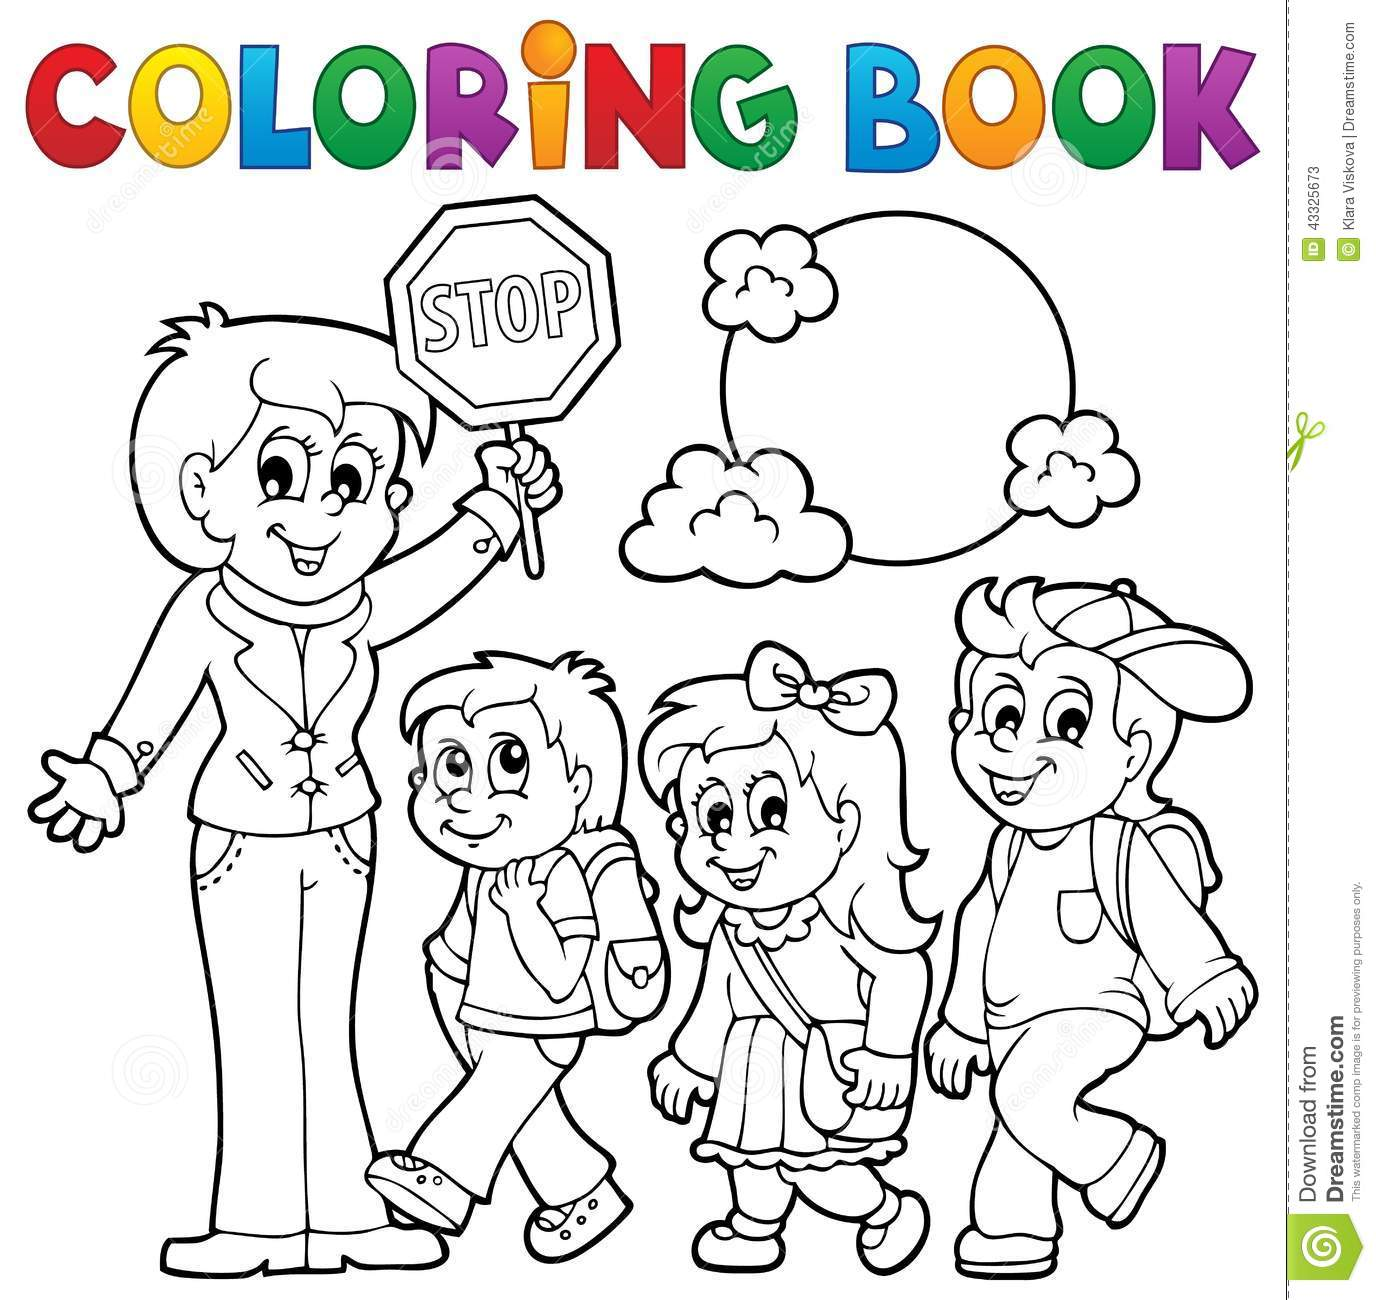 Coloring Book School Kids Theme 1 Stock Vector - Image